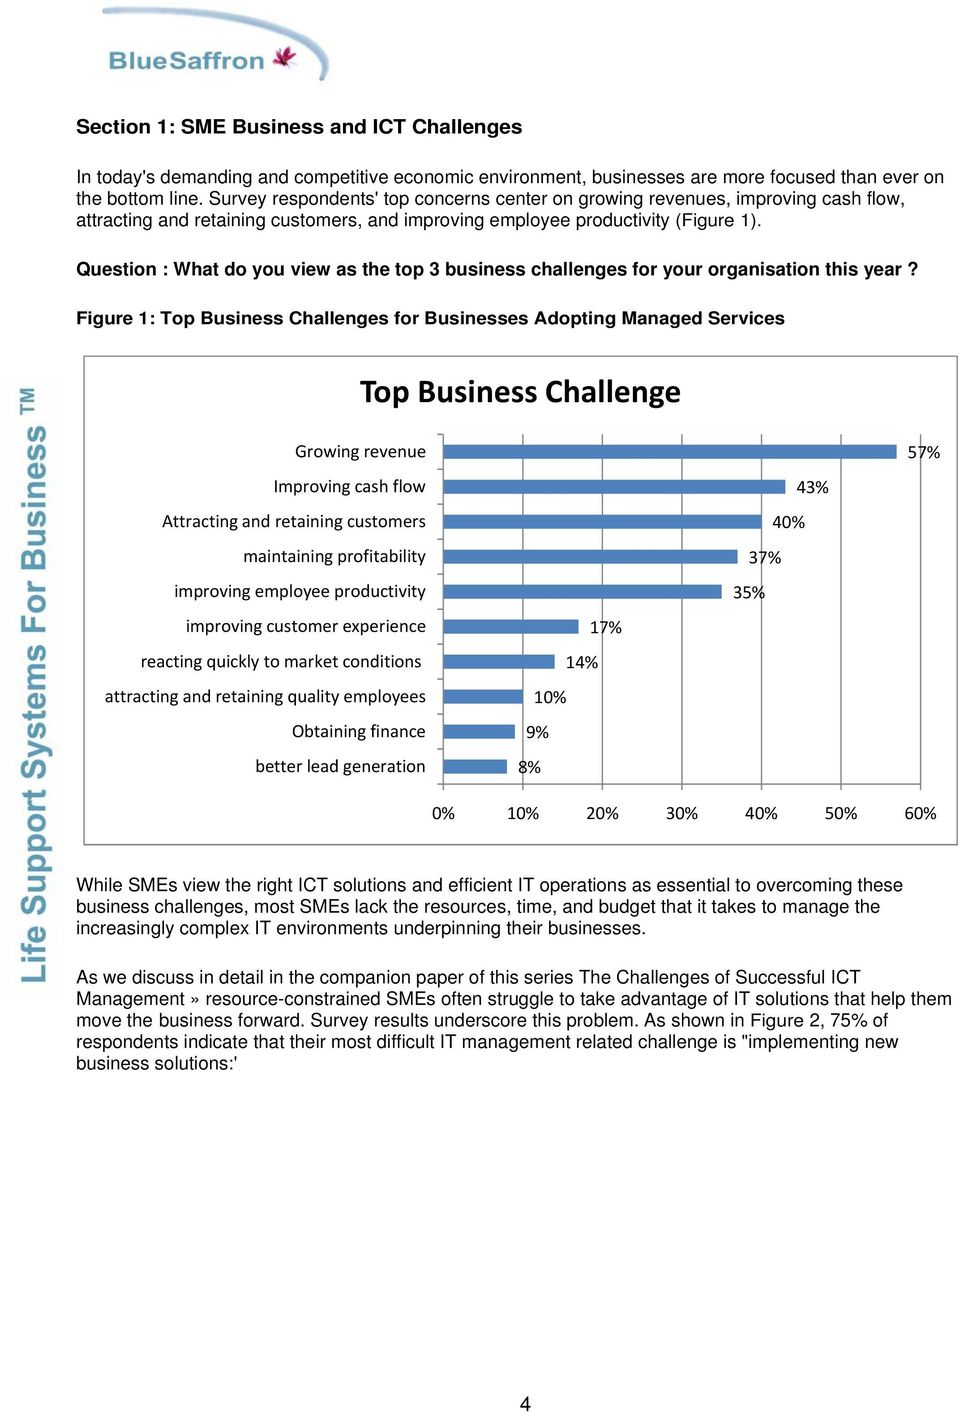 Question : What do you view as the top 3 business challenges for your organisation this year?